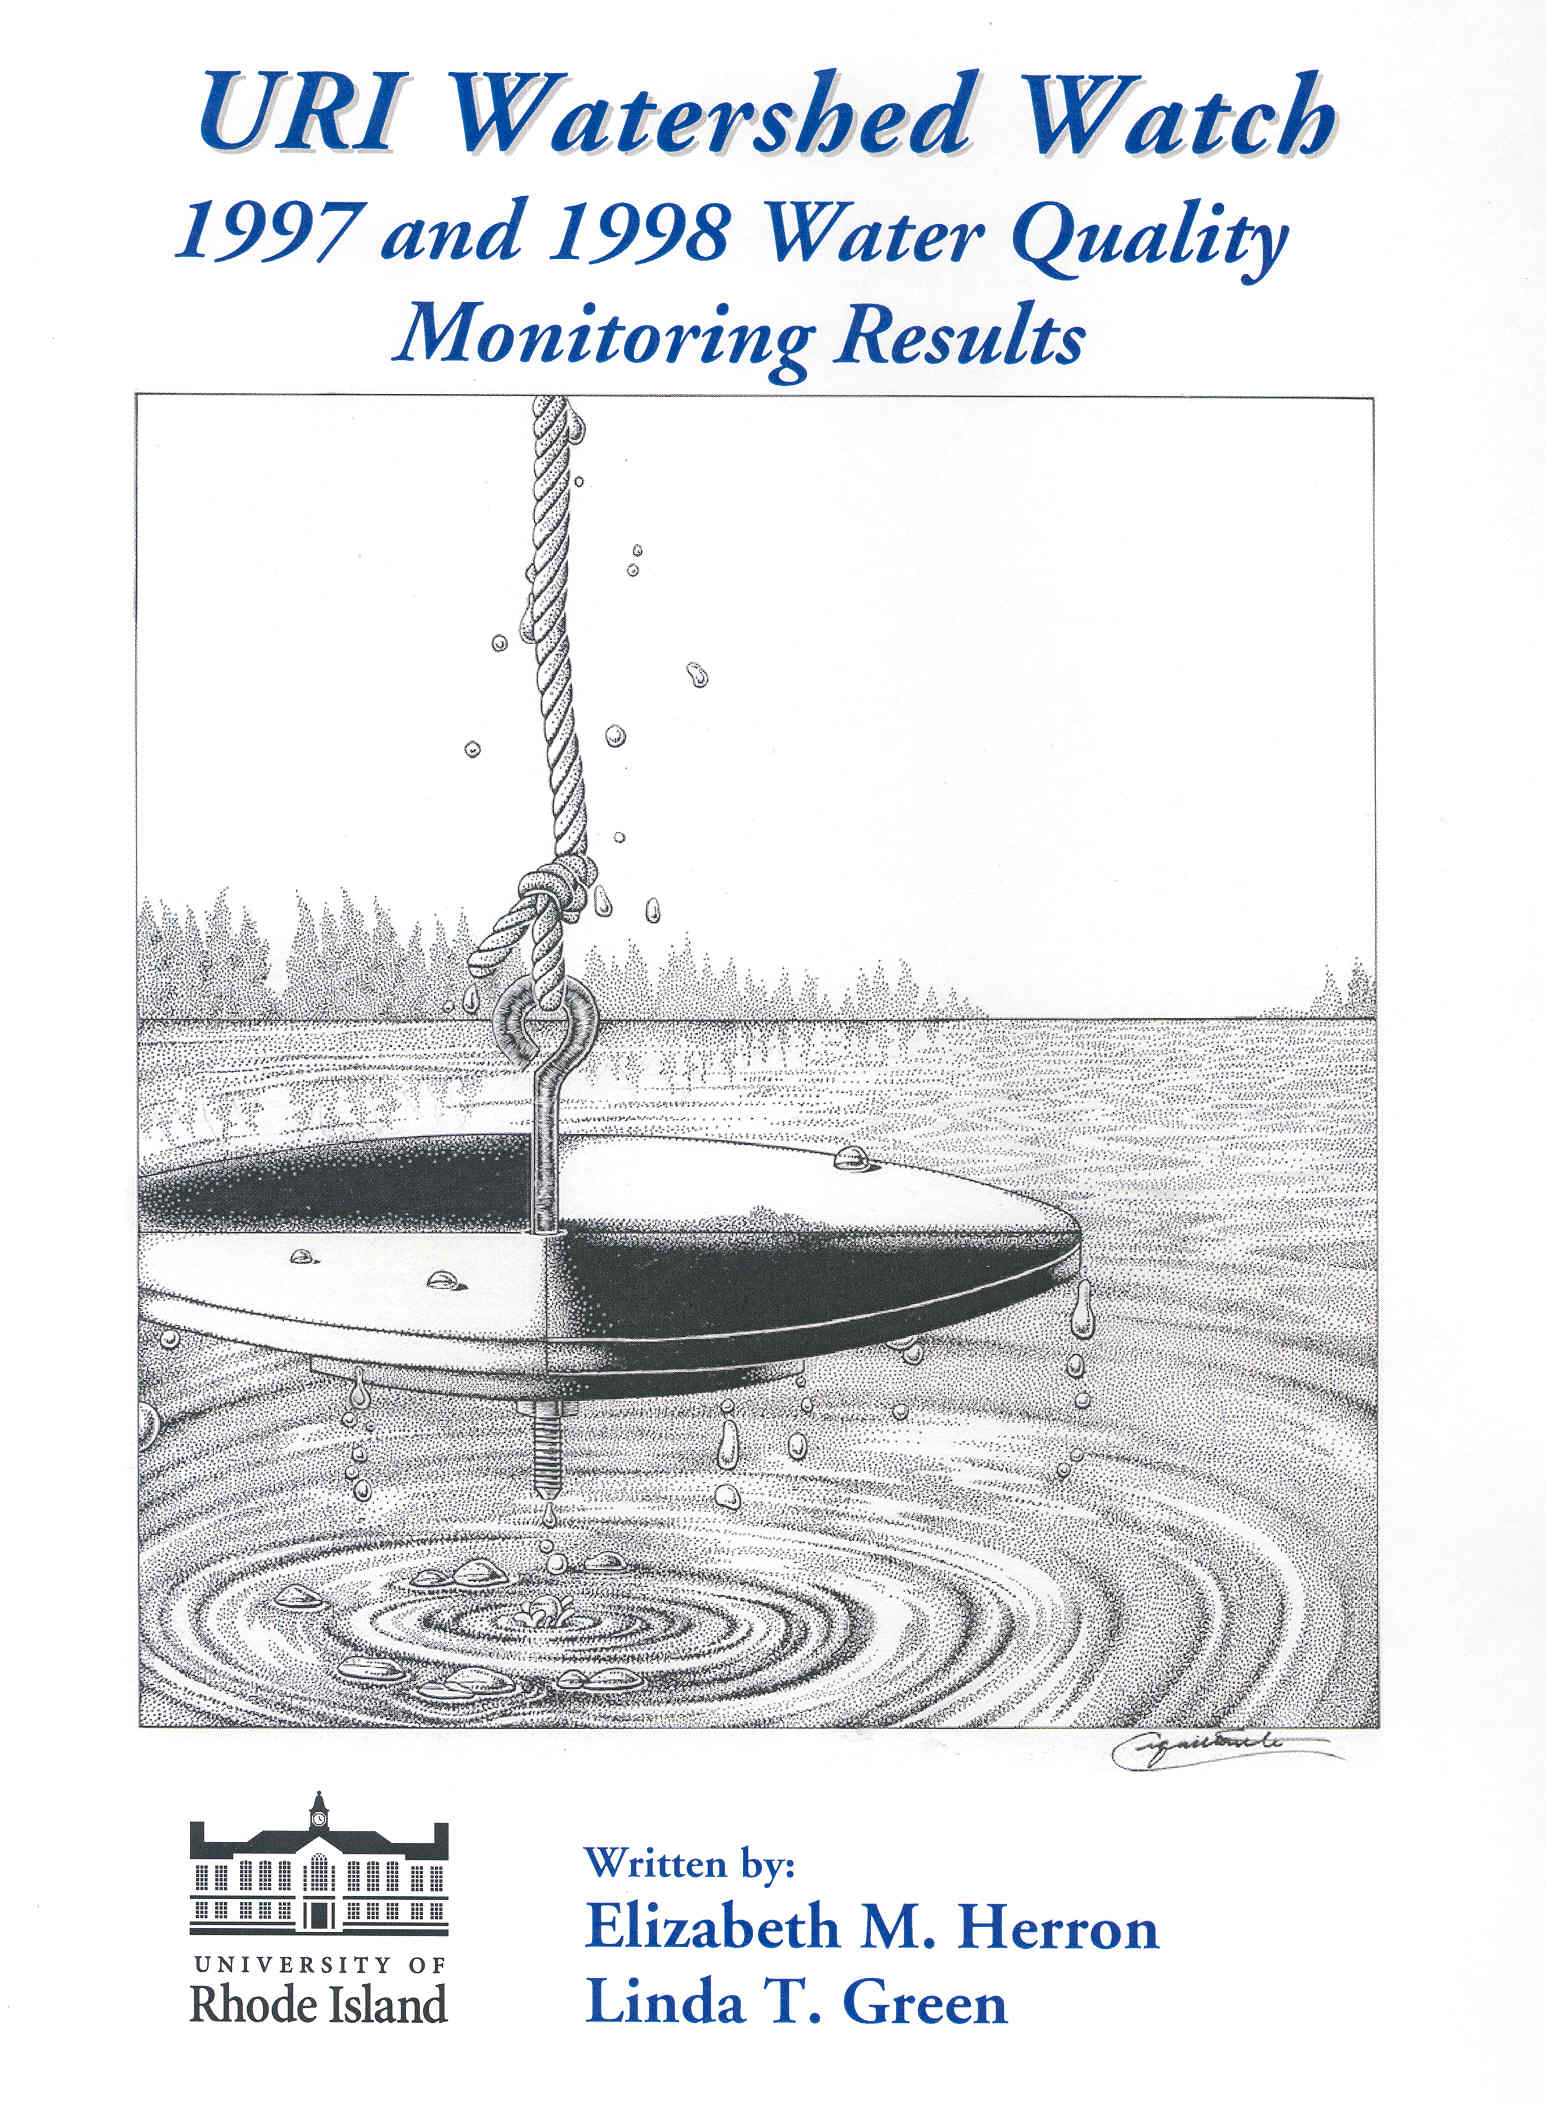 Rhode Island Water Quality Monitoring Chlorophyll